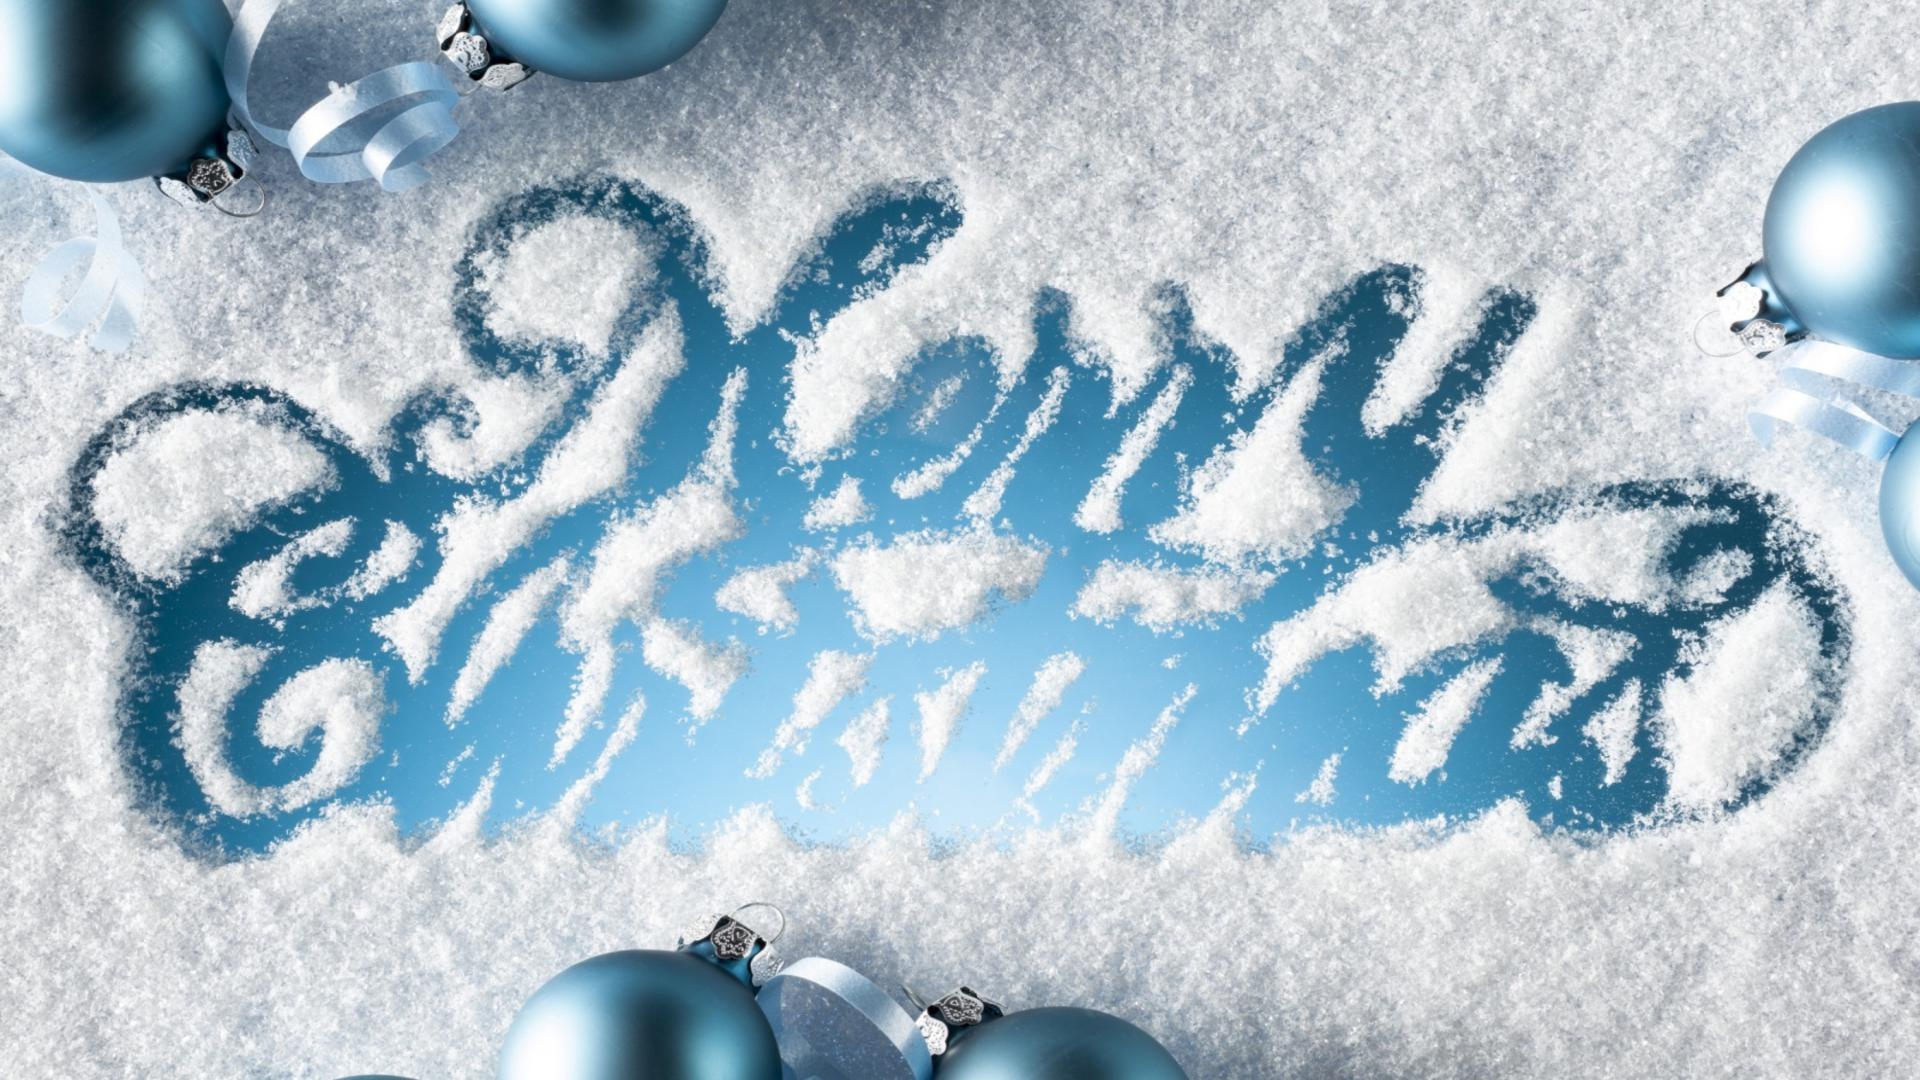 Merry christmas 2012 hd wallpapers i have a pc merry christmas 2012 hd wallpapers thecheapjerseys Choice Image